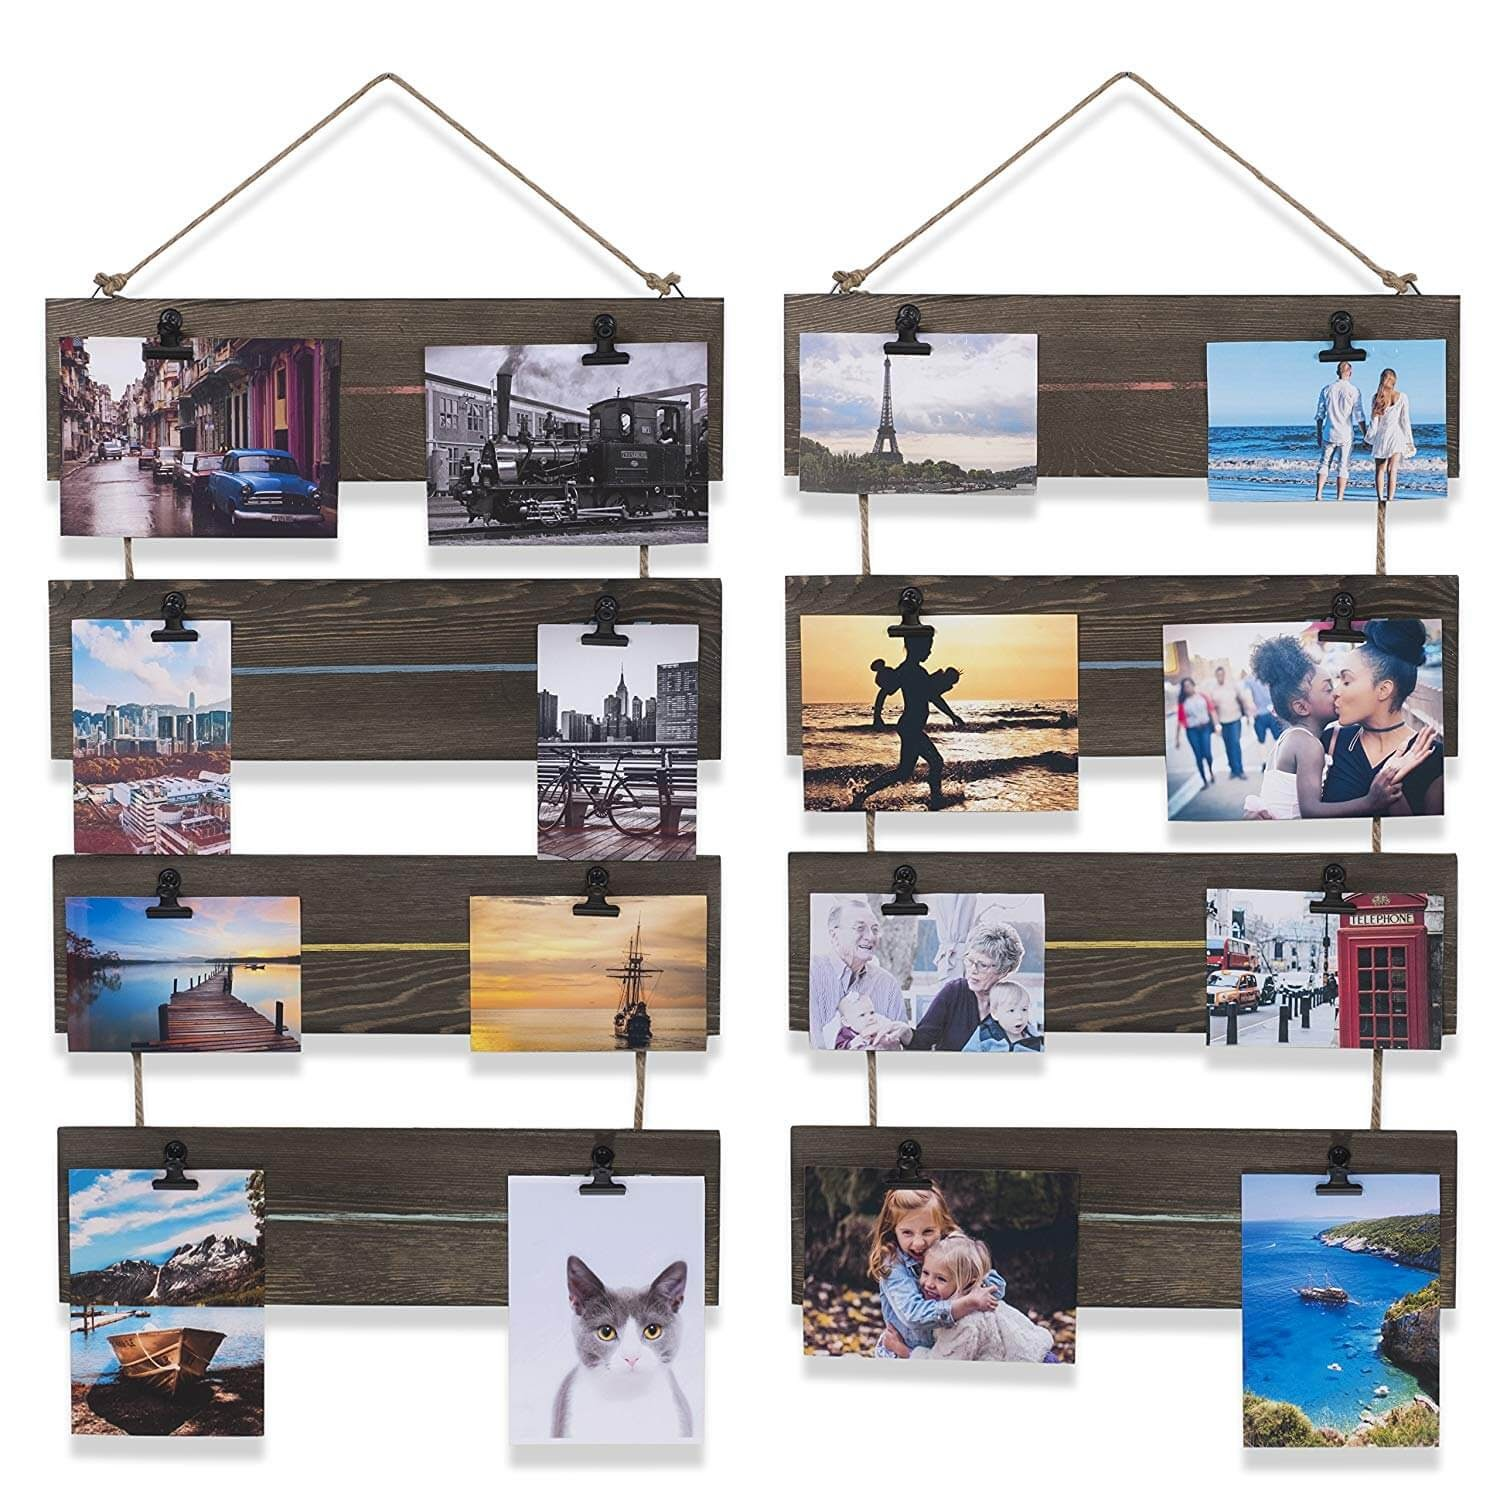 Brightmaison rustic, wooden clipboards